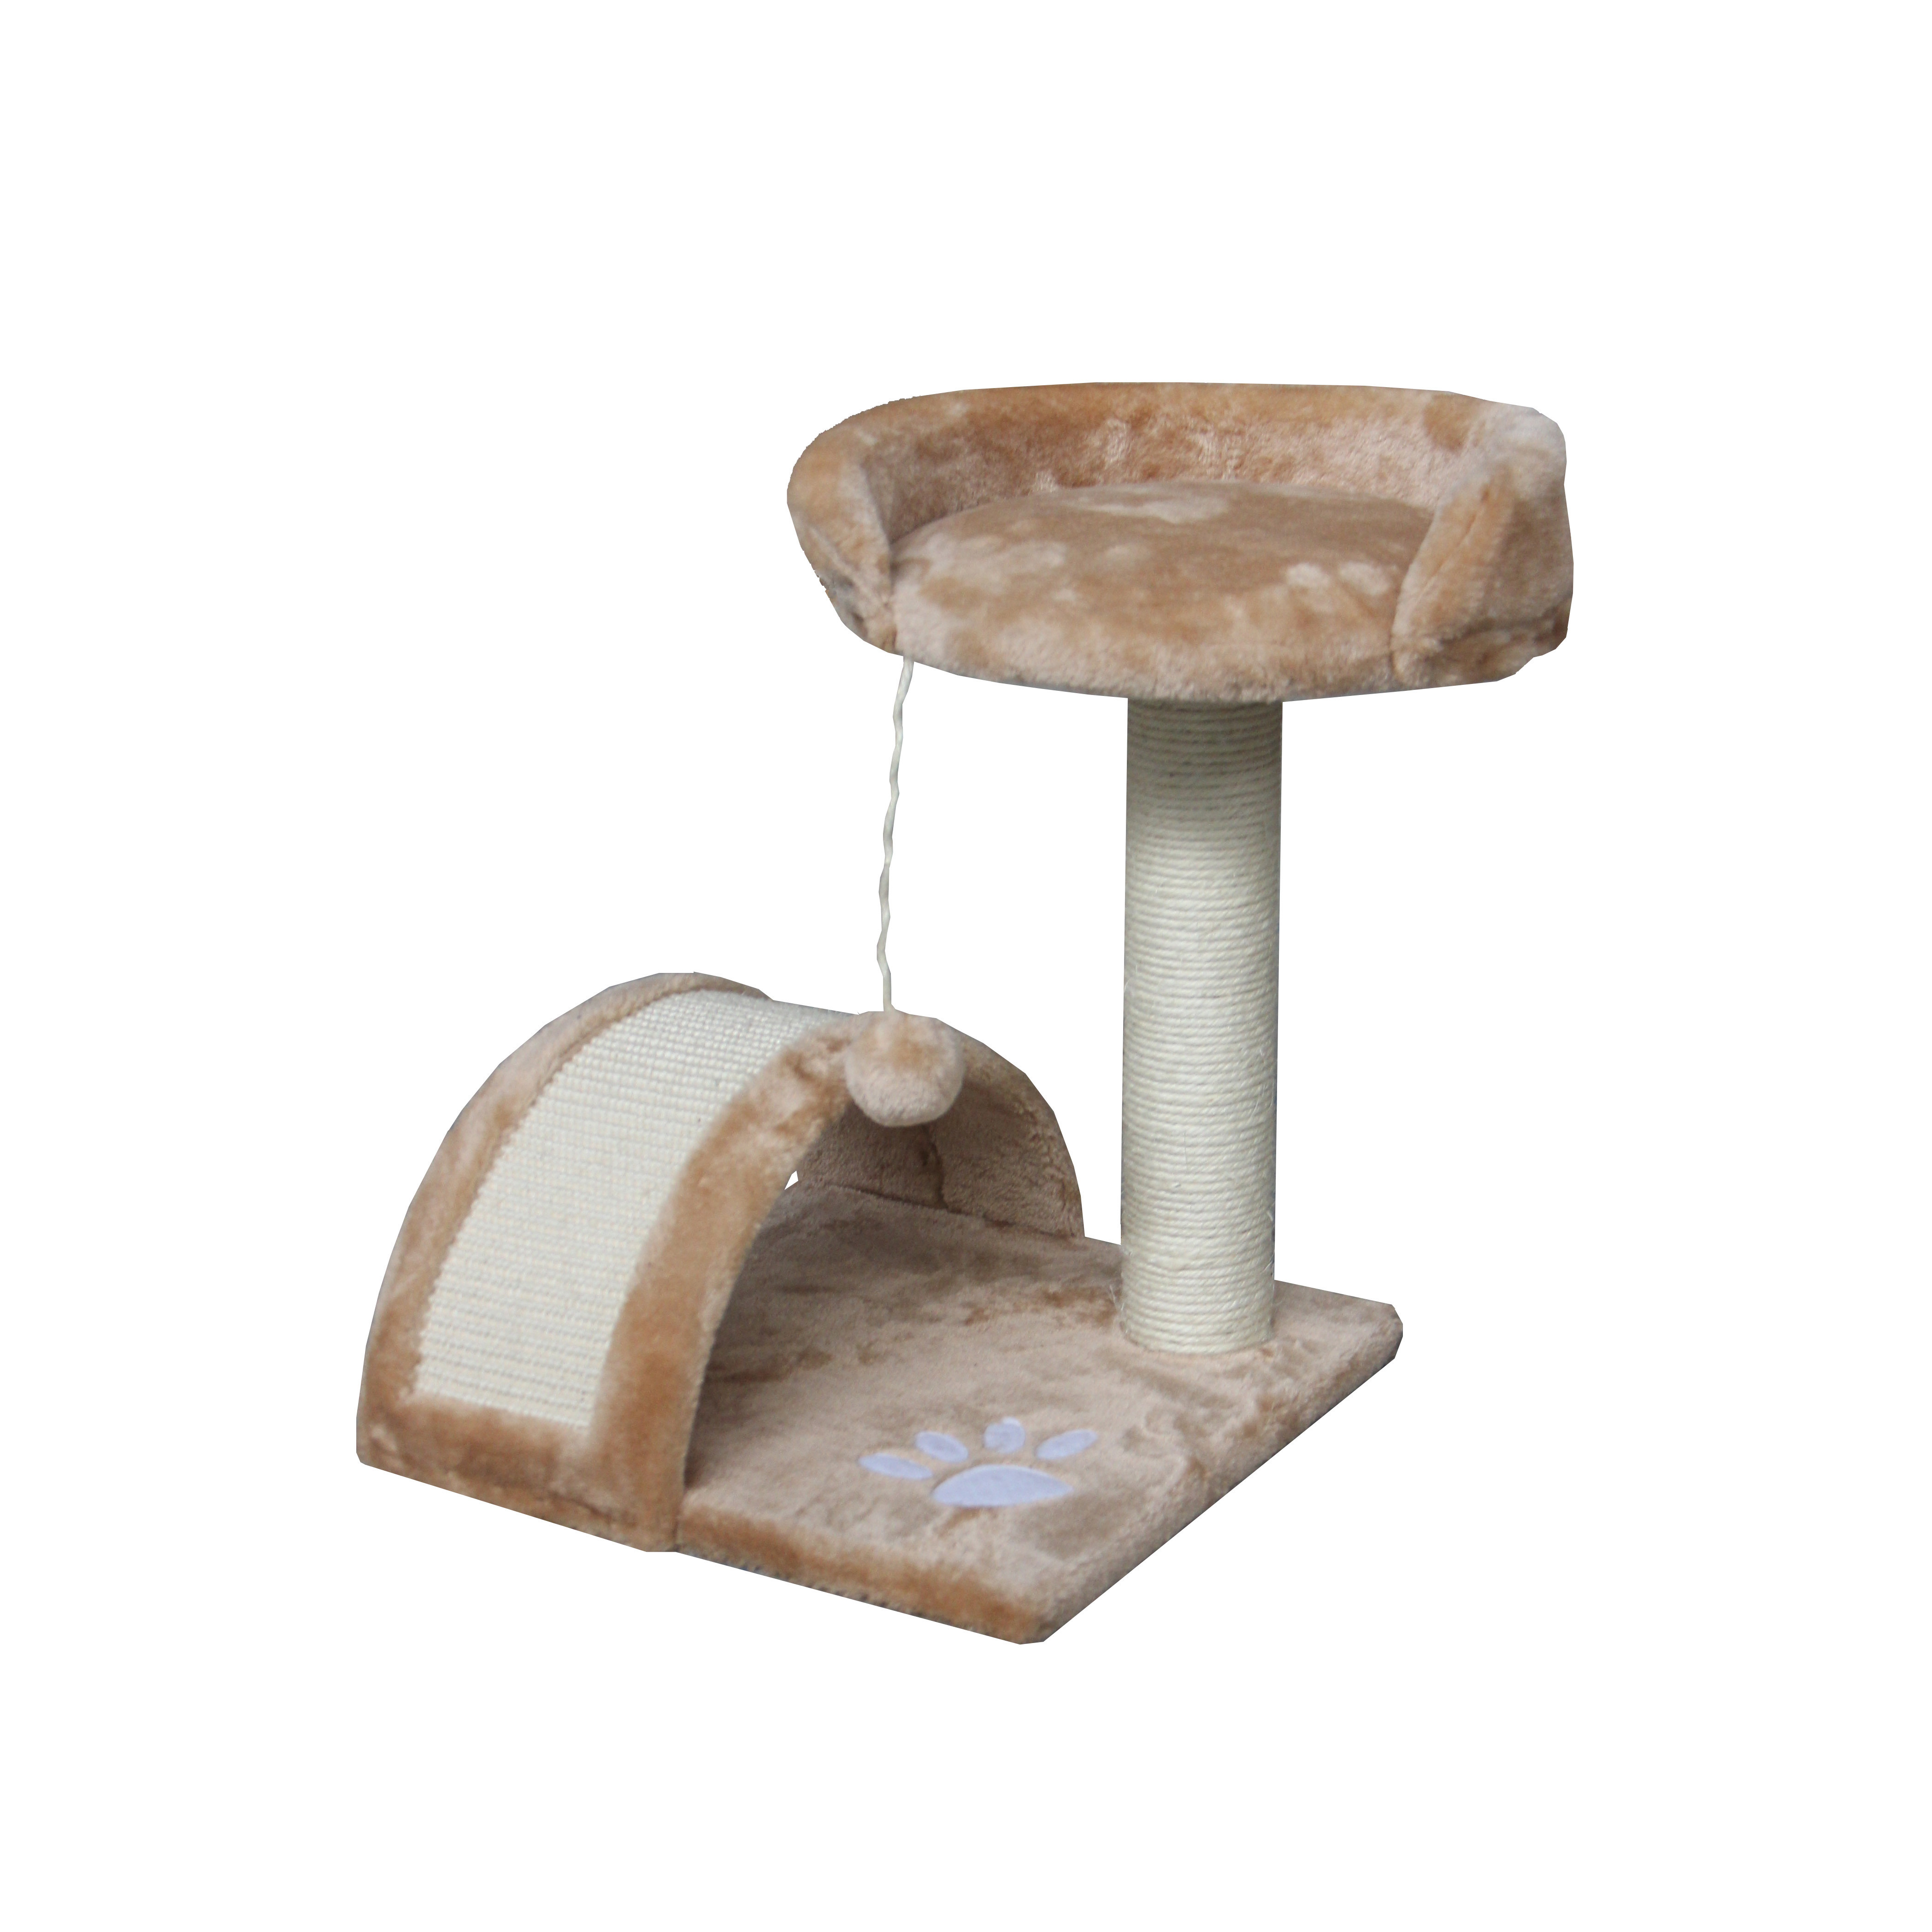 cat tree cats thinkng hammock ihave of fits on this would i tower with a and couple corner love that pin built smart